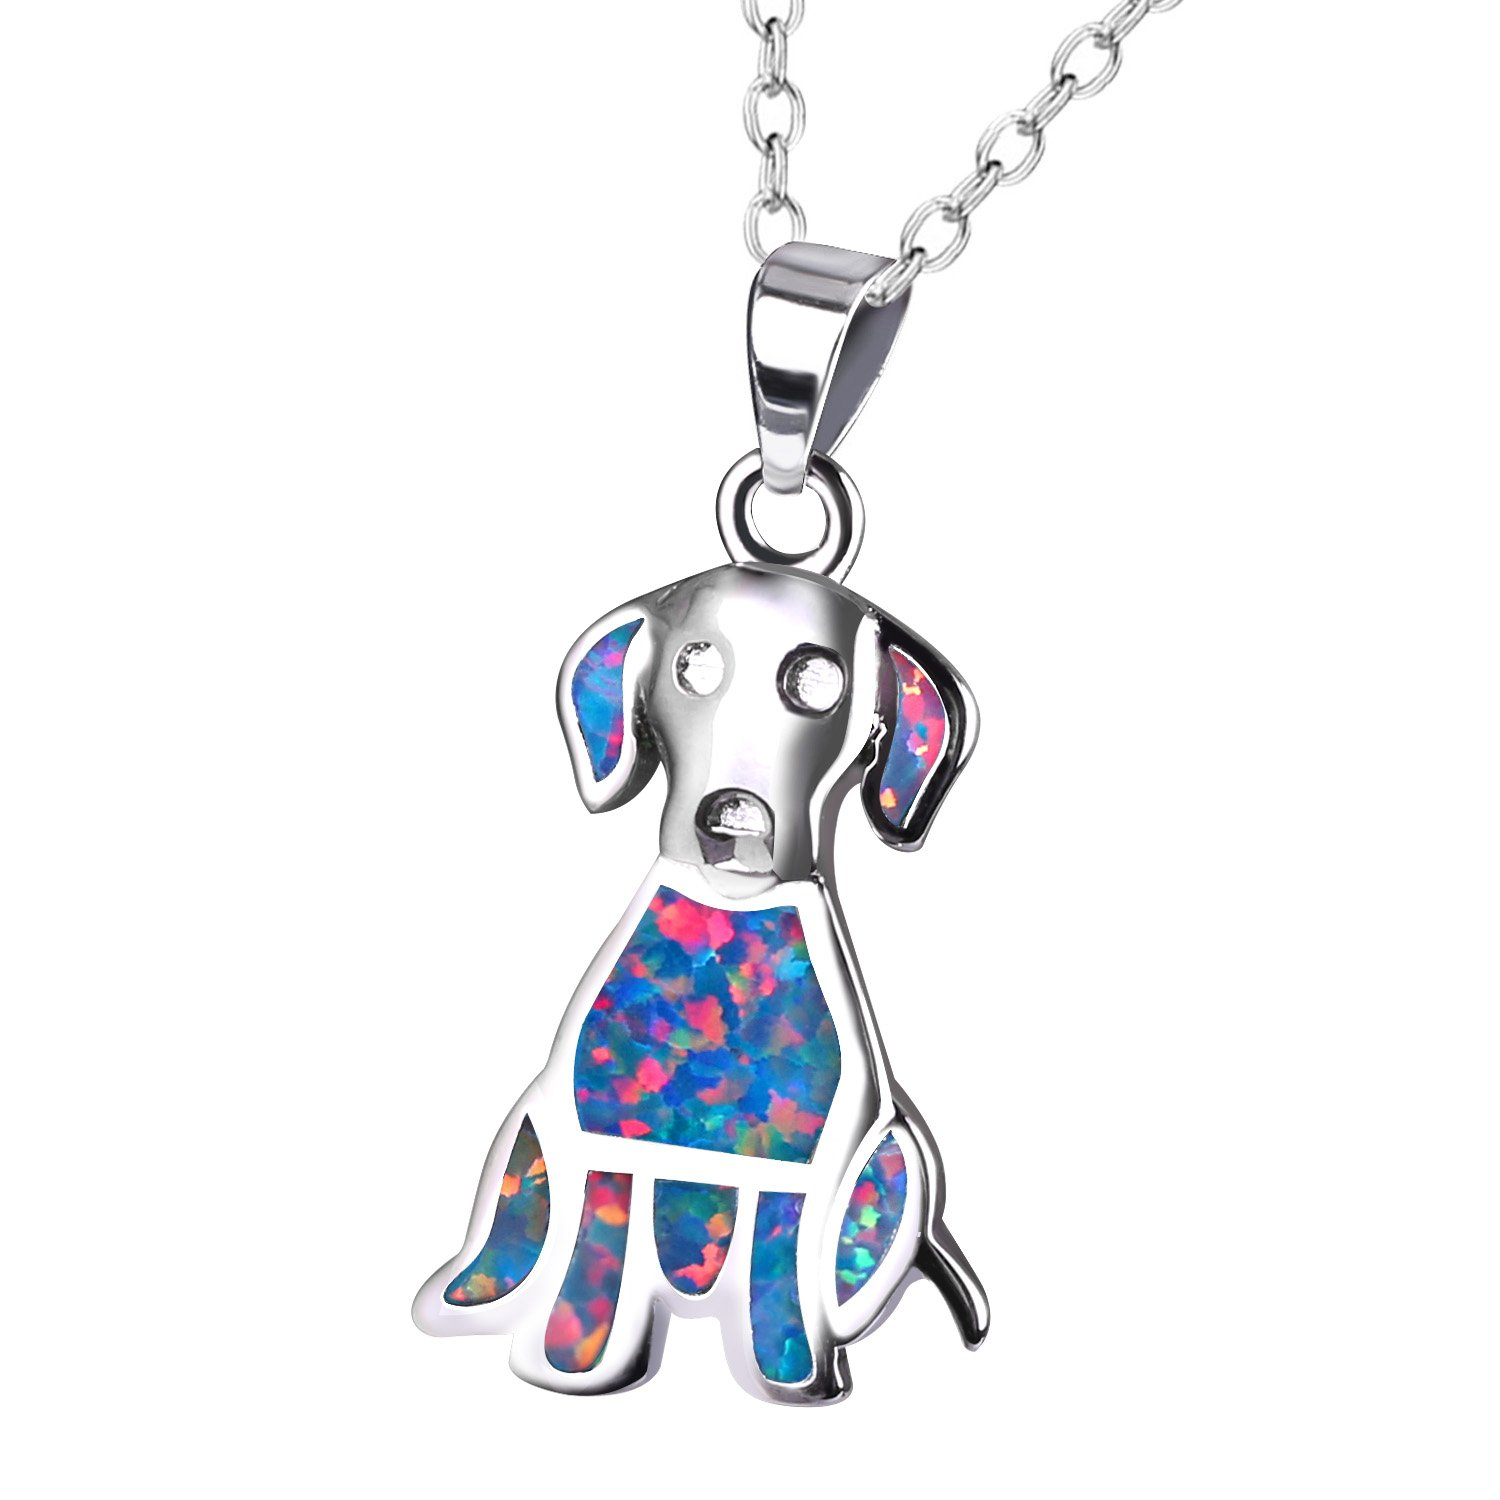 KELITCH Labrador Retriever Pendant Necklace Synthetic Opal Animal Choker Necklace Jewelry Gift (Red)